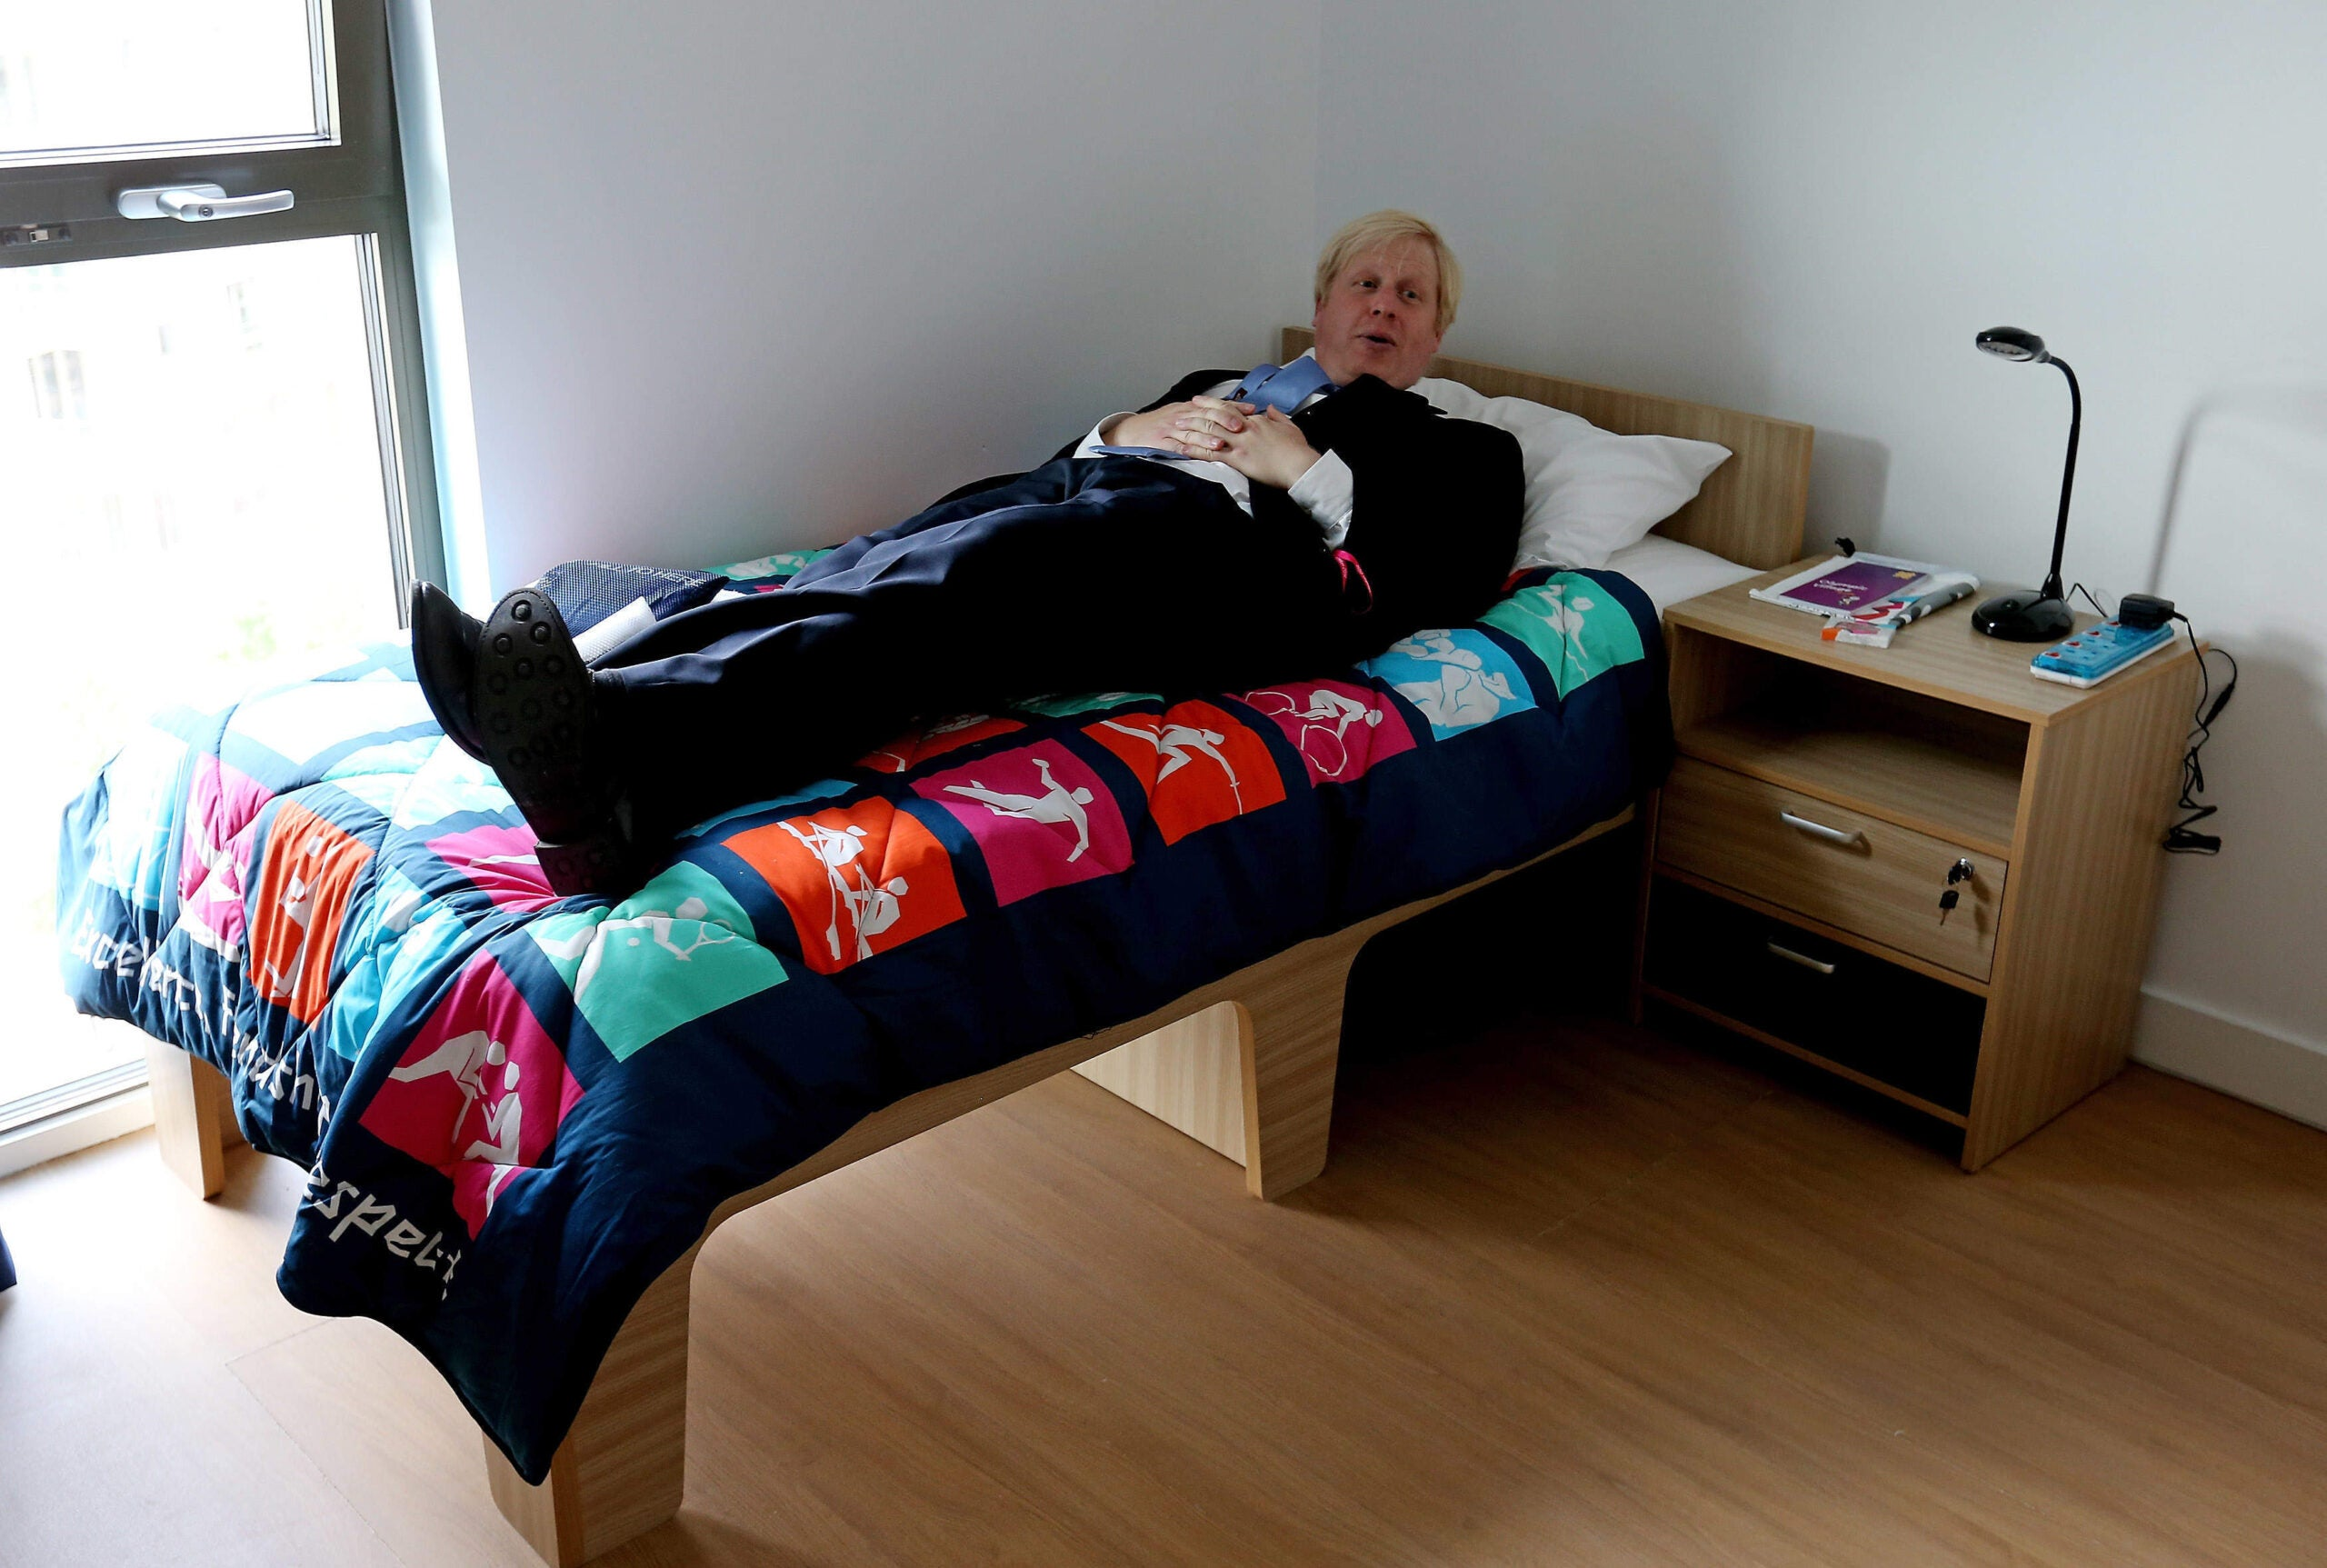 Exclusive: Boris's hypocrisy on working from home